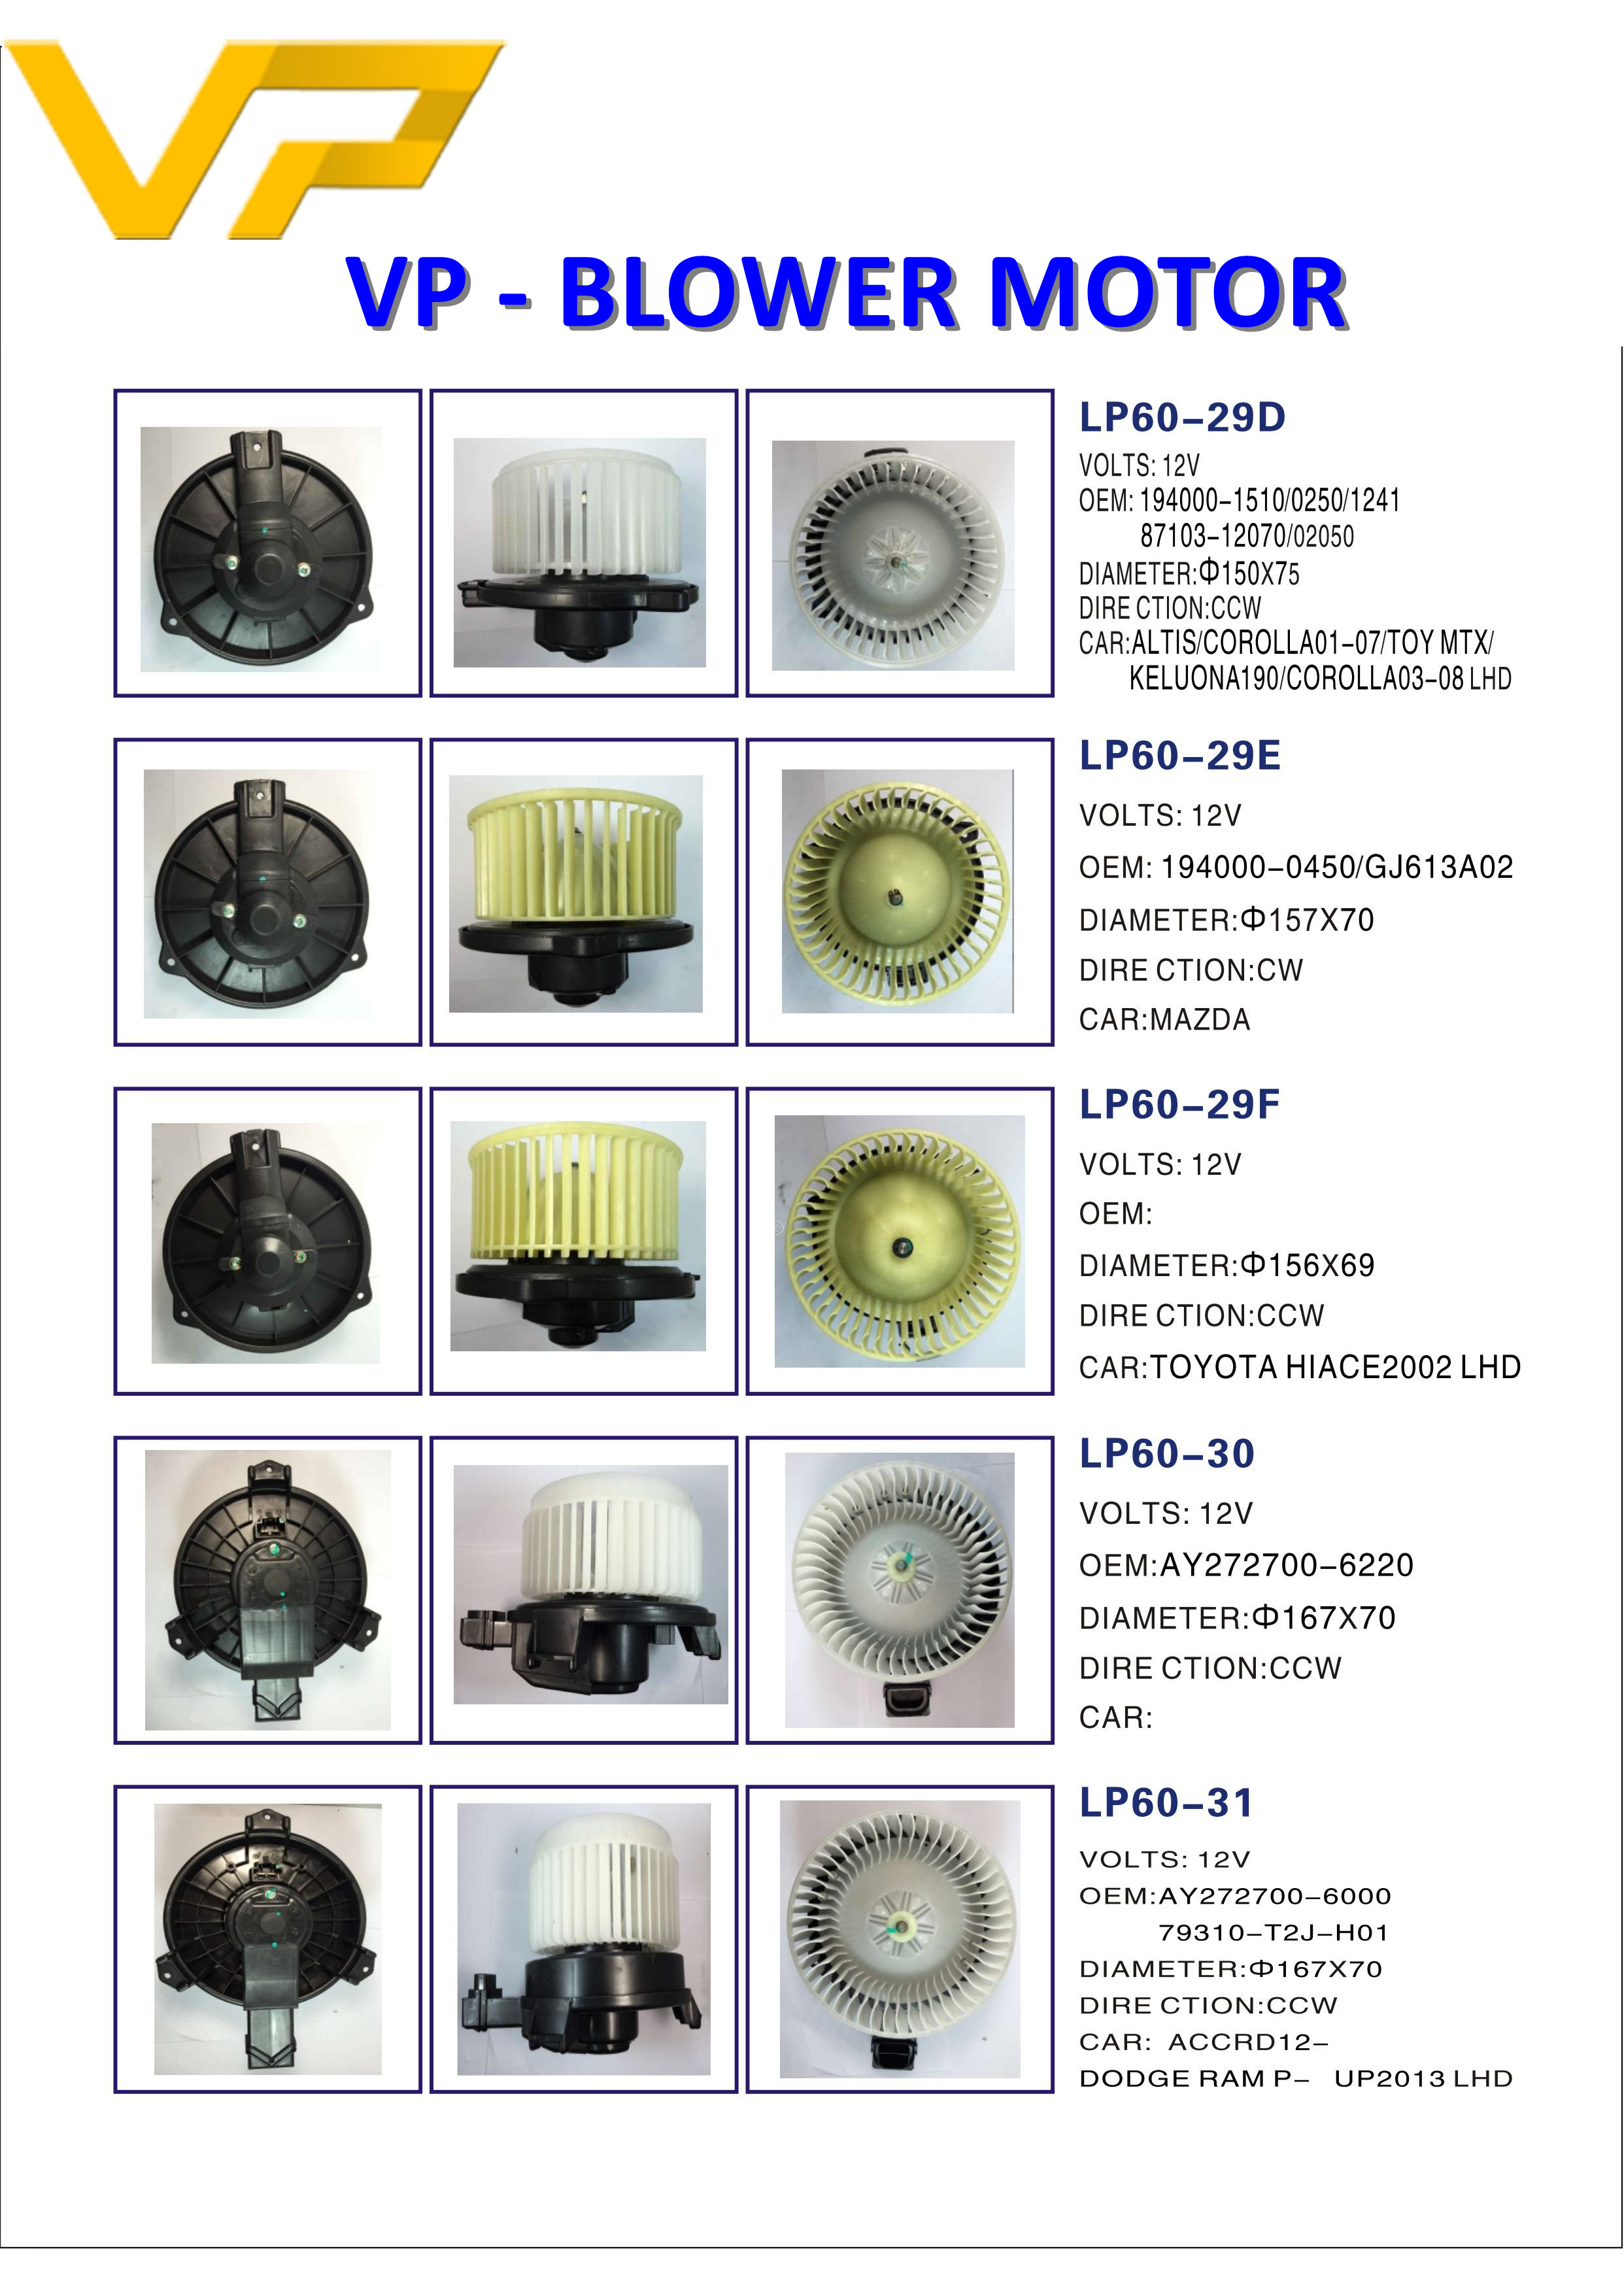 Blower motor for car air conditioner system